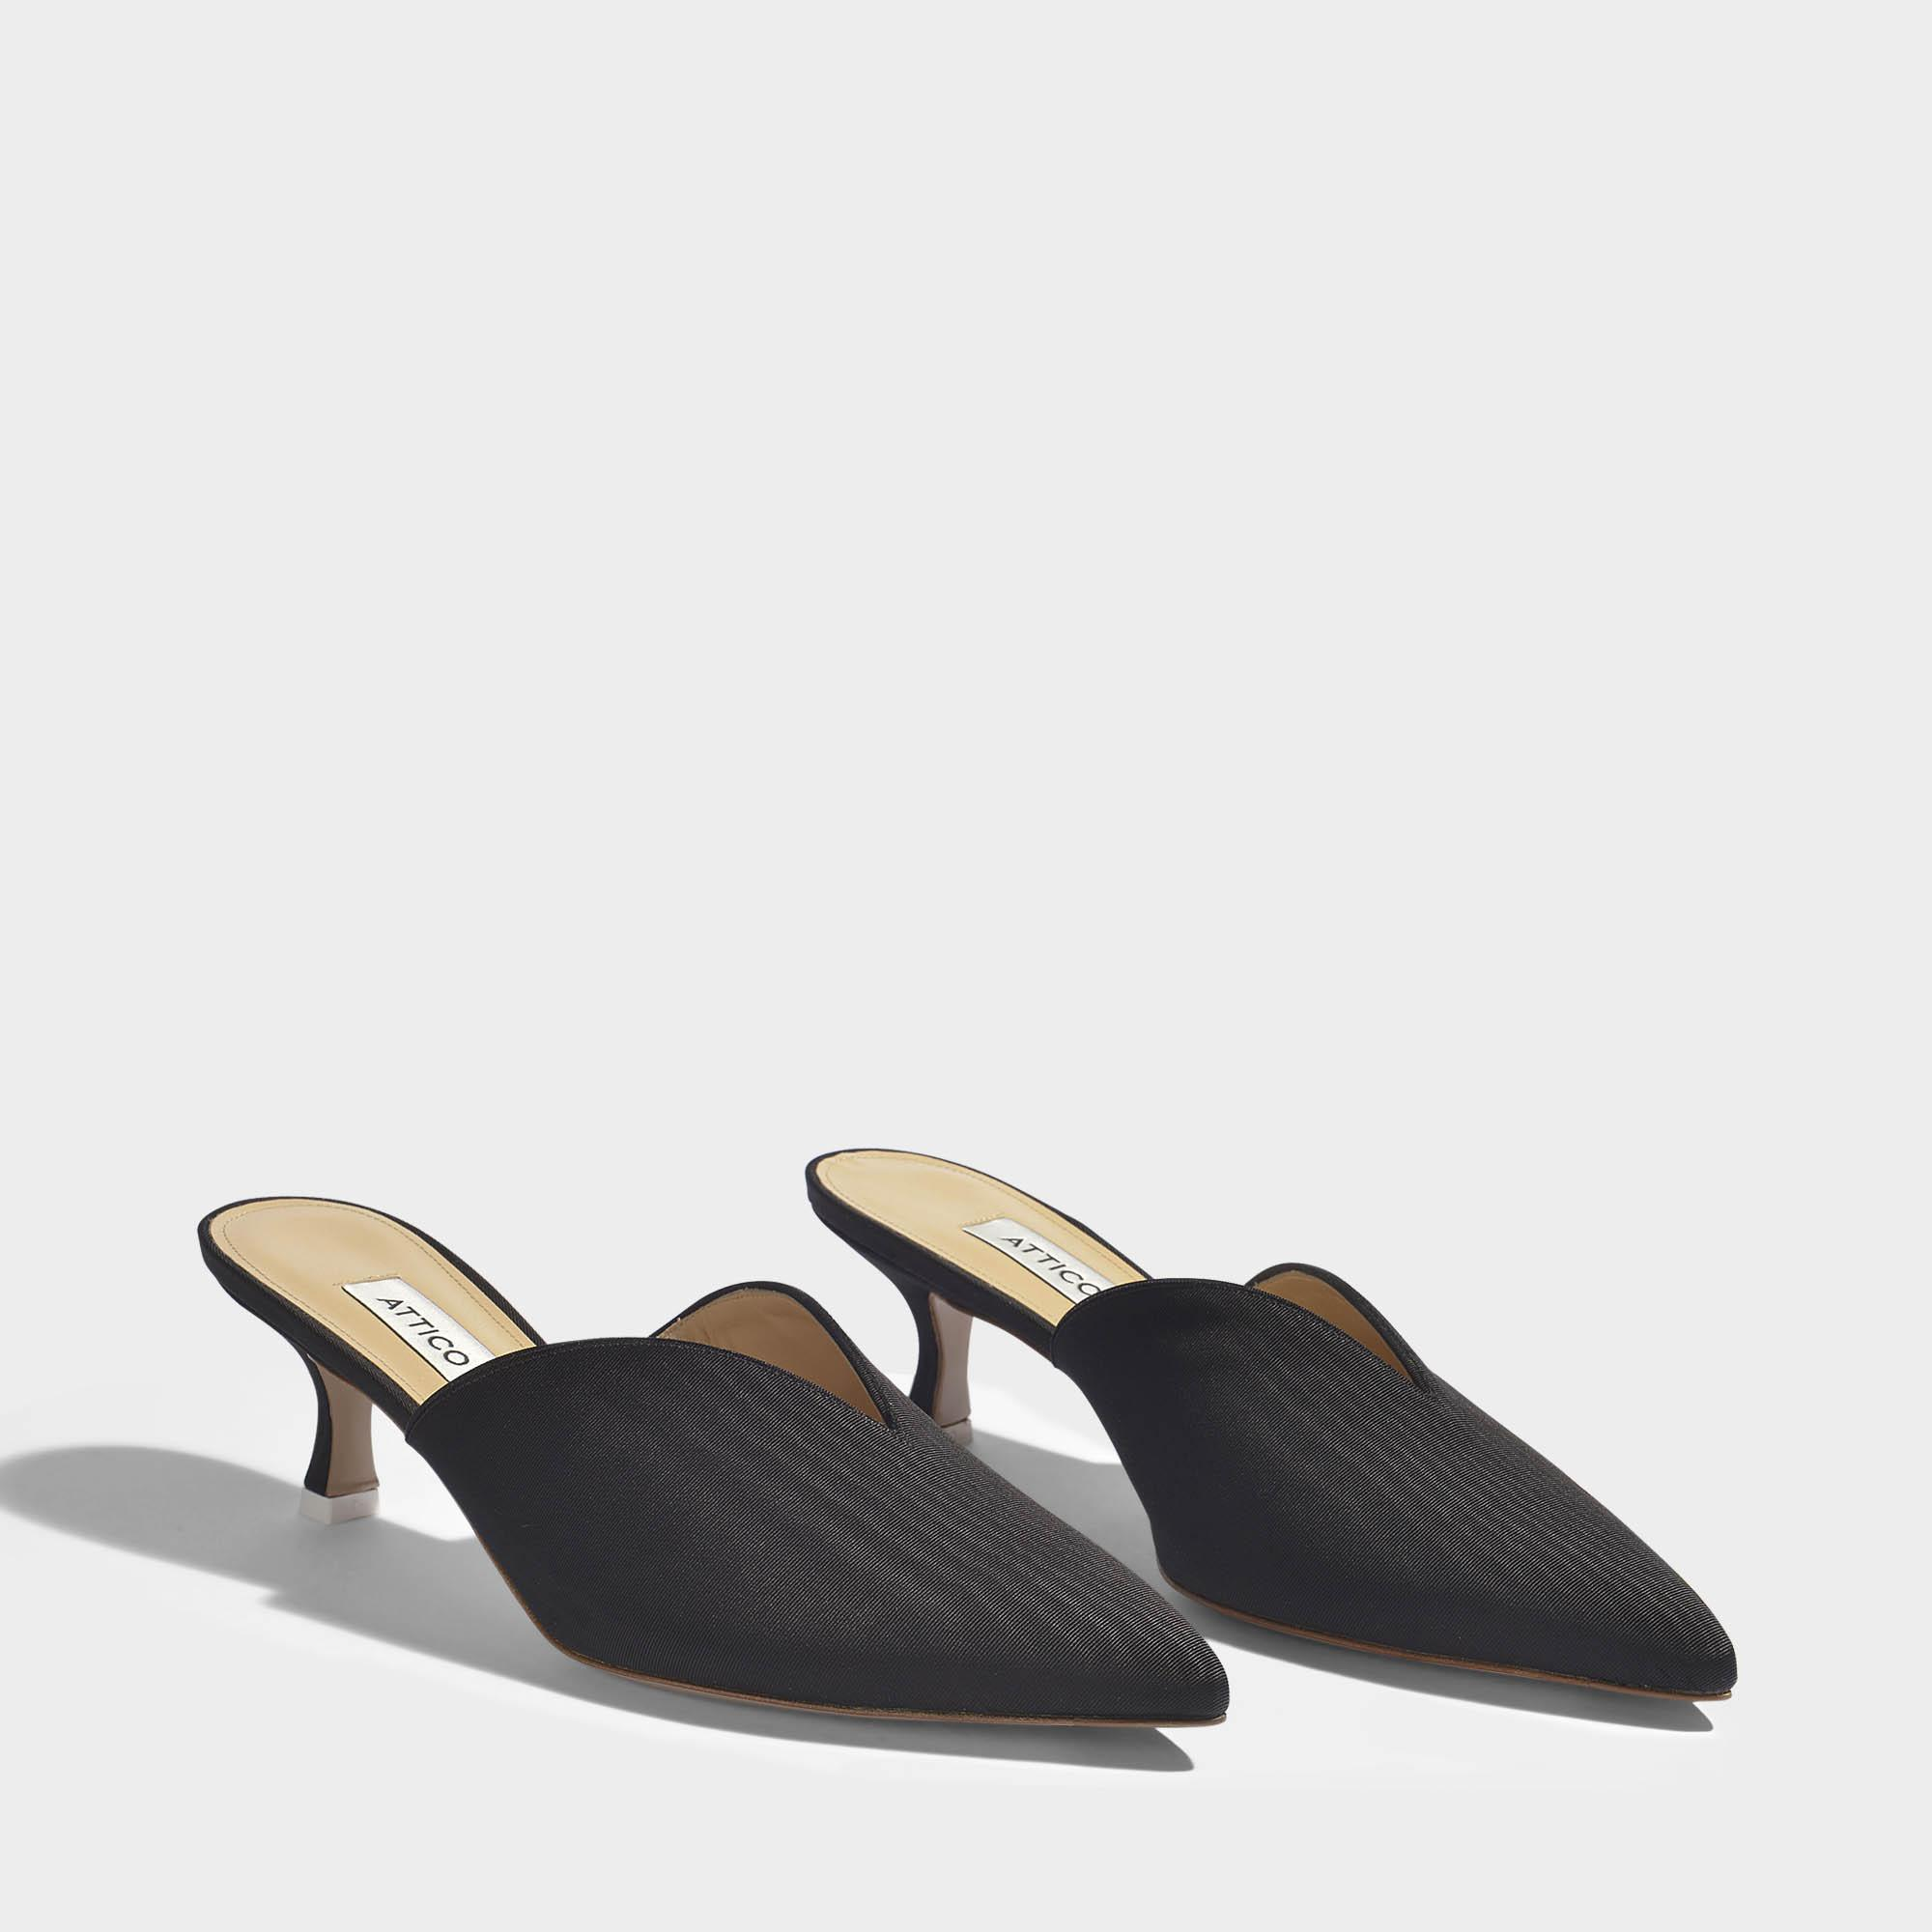 Cara Mid Height Mule Shoes in Black Silk Leather Attico liM4pDRkaf